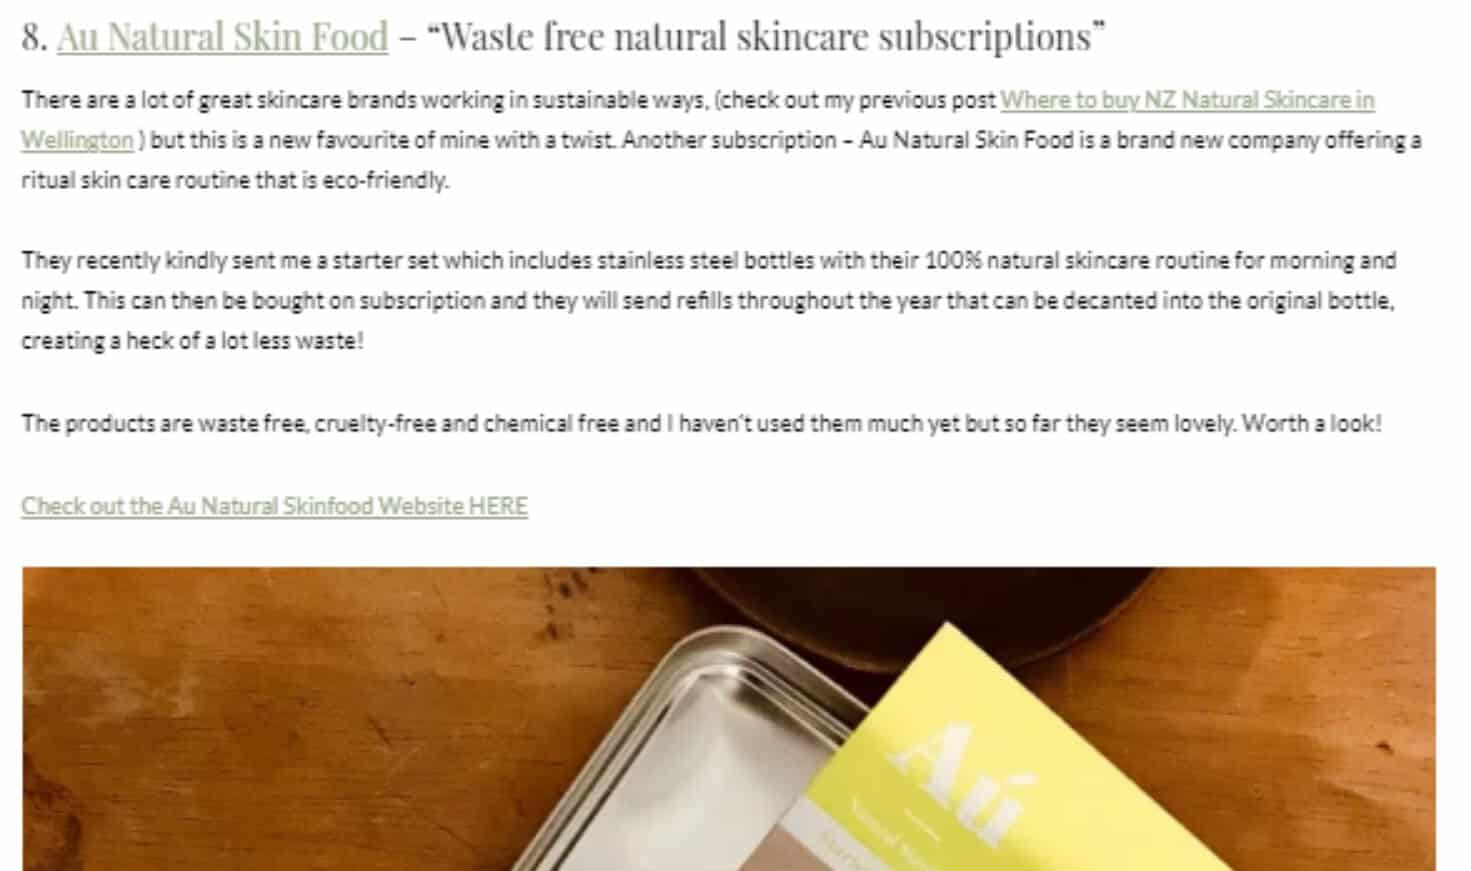 au Natural Skinfood - Lost in Silver Fern